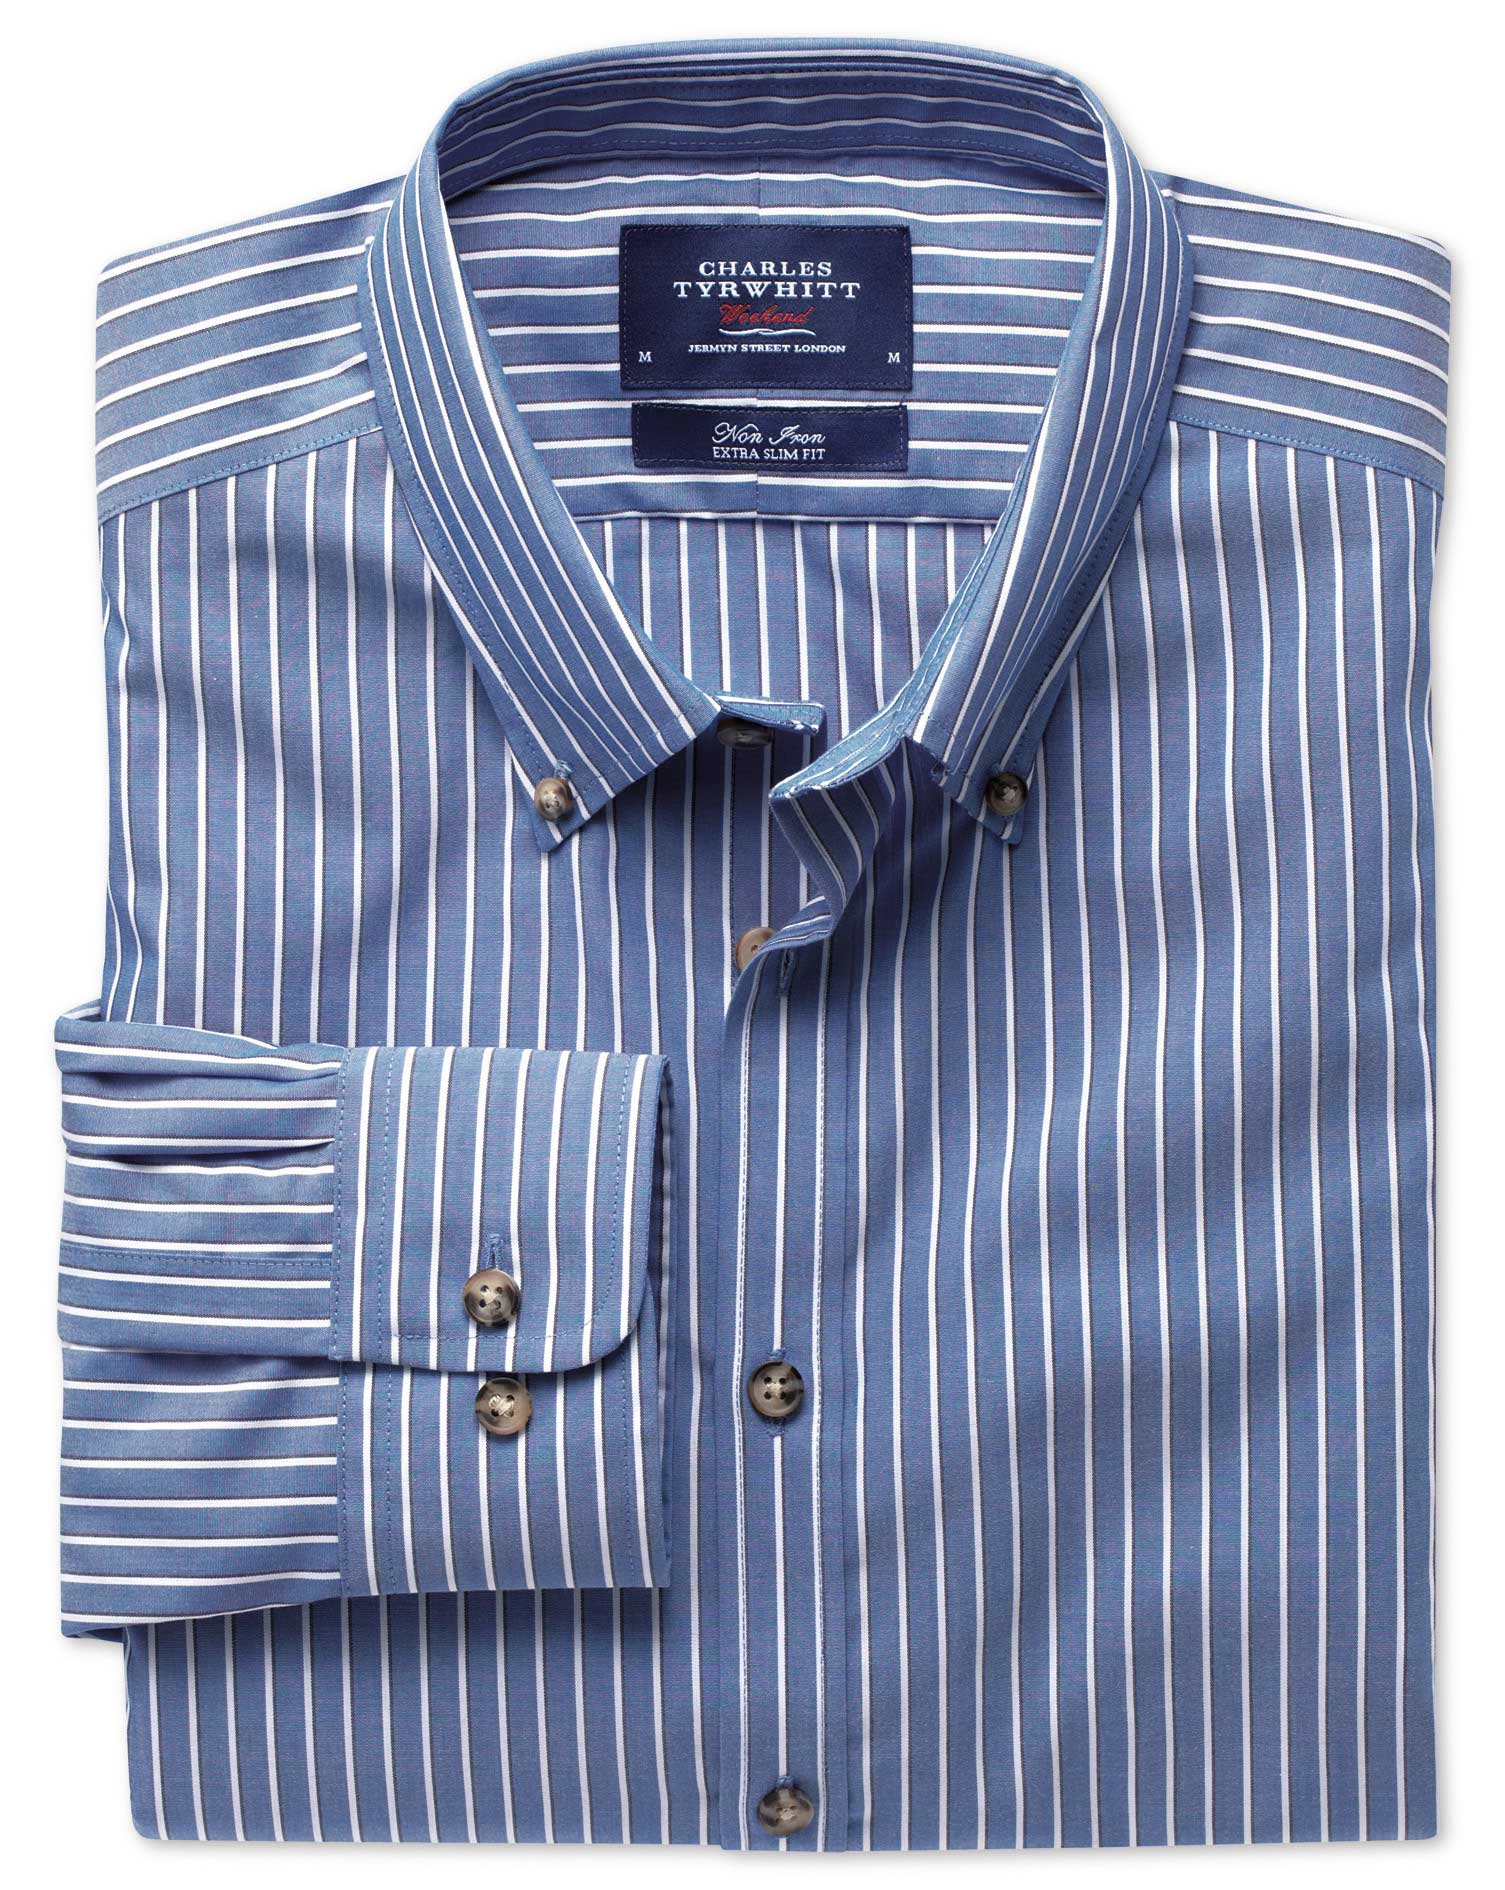 Extra Slim Fit Non-Iron Poplin Blue and White Stripe Cotton Shirt Single Cuff Size XS by Charles Tyr